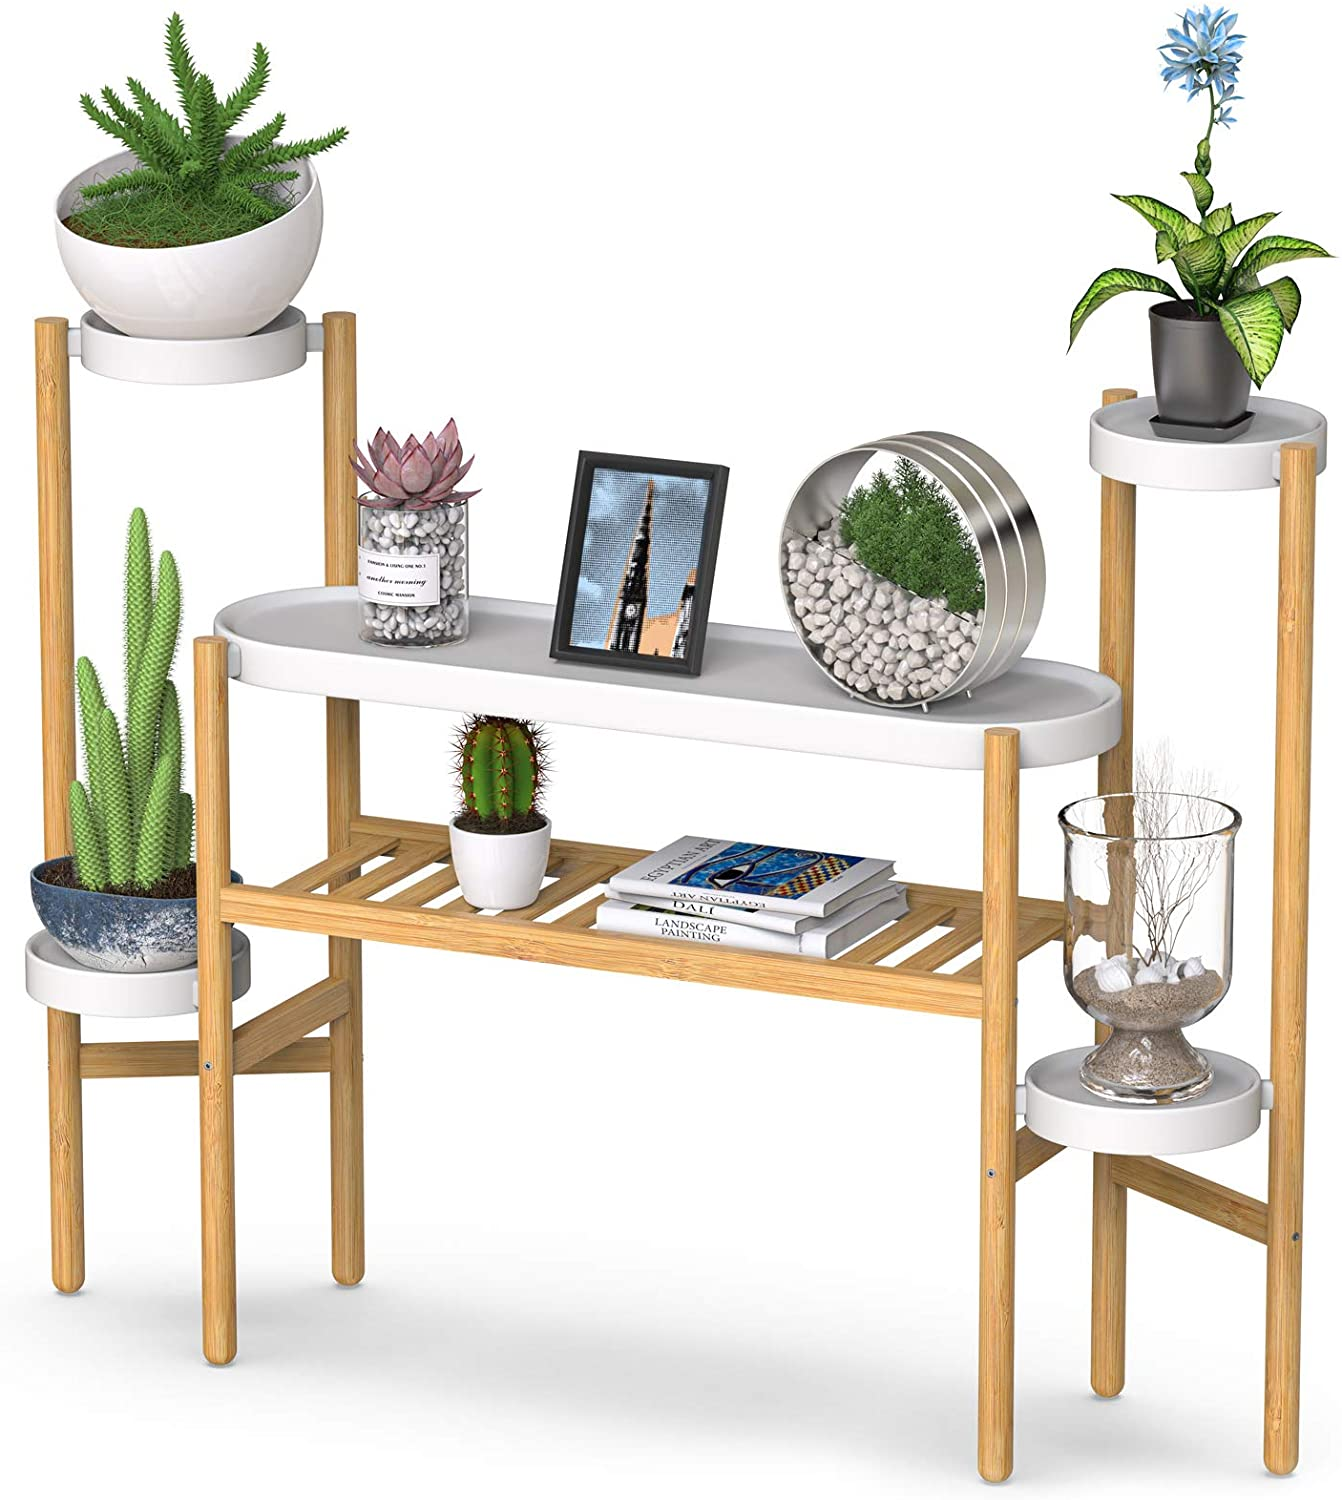 Bamboo Plant Stands Indoor, 3 Tier Tall Corner Plant Stand Holder & Plant Display Rack for Garden Outdoor (3-2 Tier)